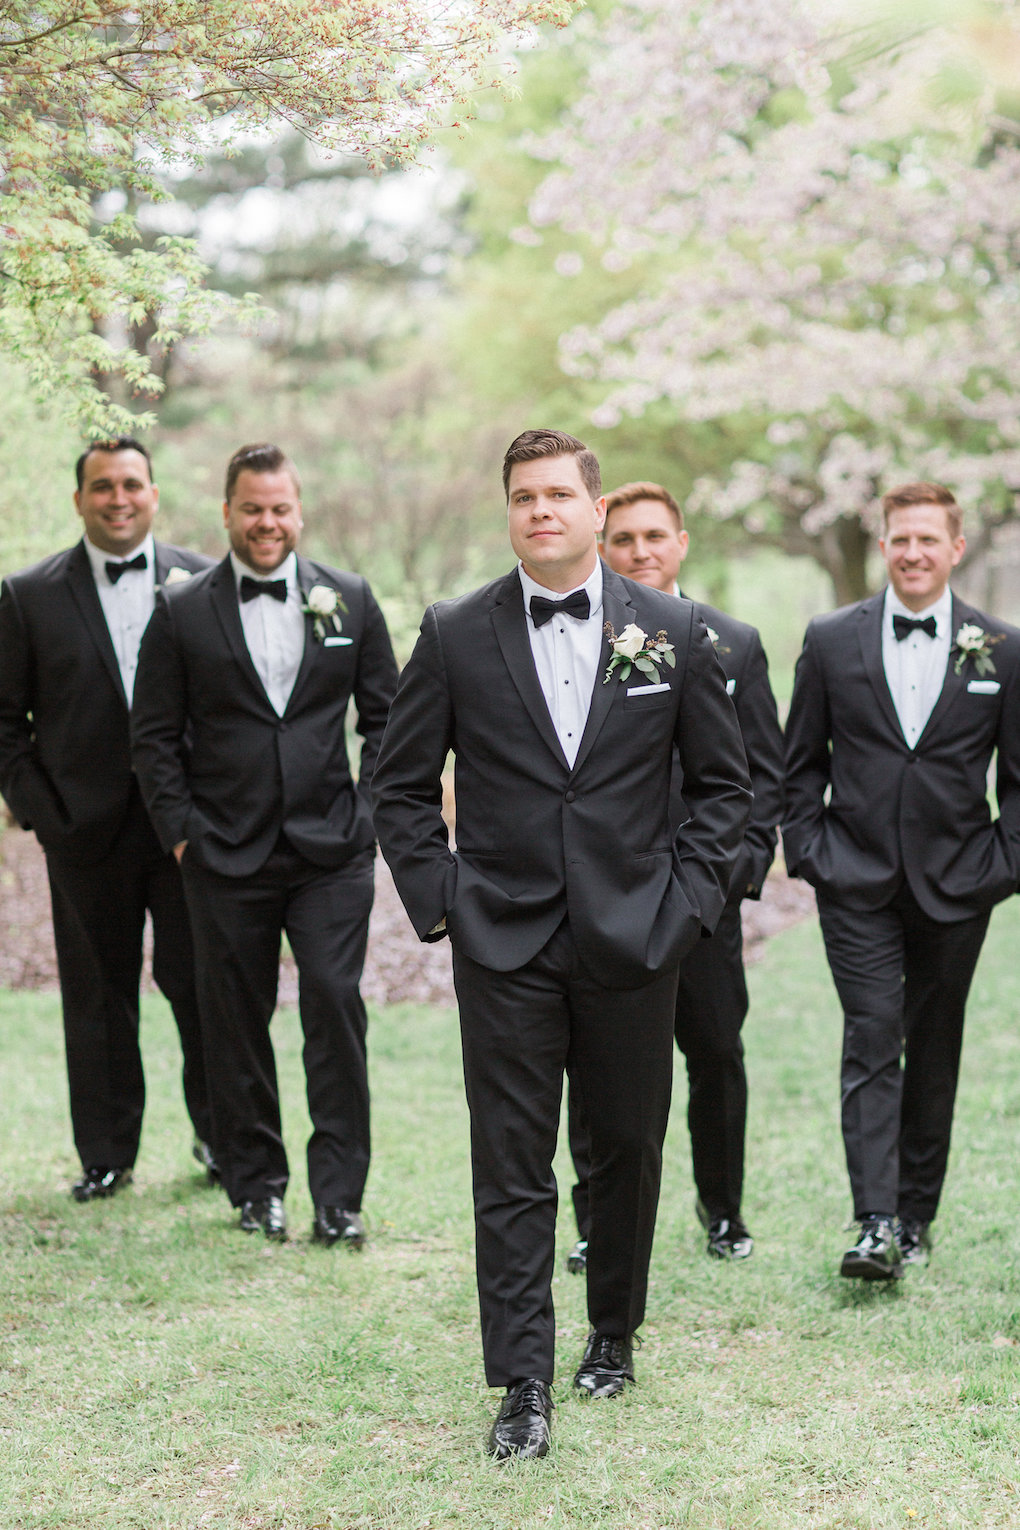 Groom and groomsmen pose for wedding photos for chic wedding in Buffalo, NY planned by Exhale Events. Find more timeless wedding inspiration at exhale-events.com!